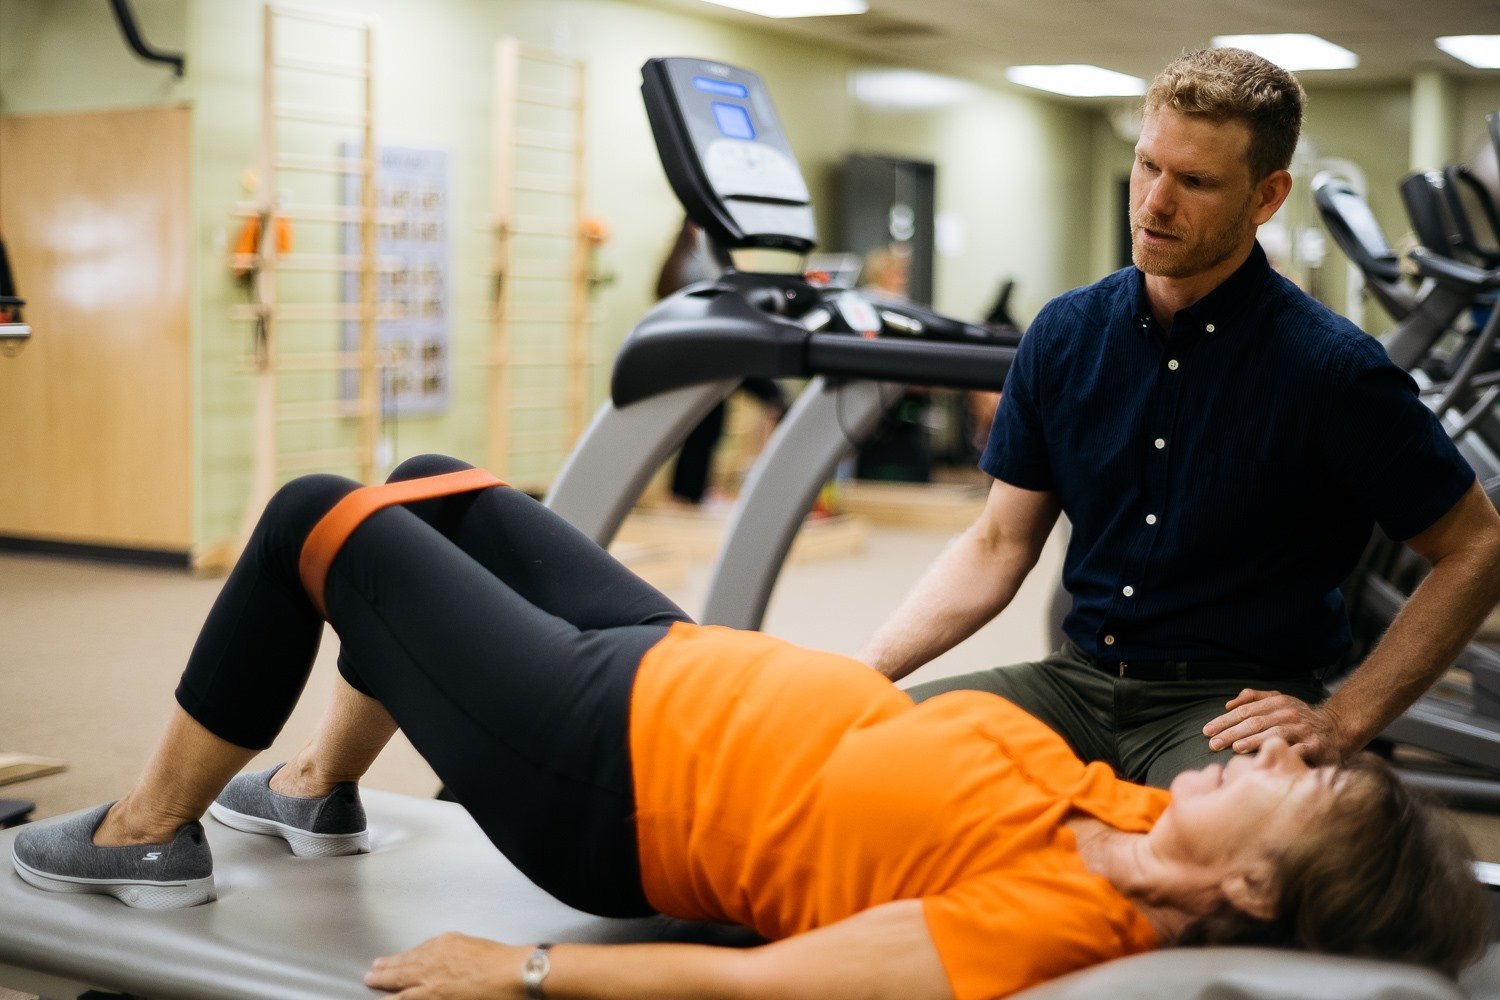 4 Tips to Help Physical Therapy at Home During the Quarantine